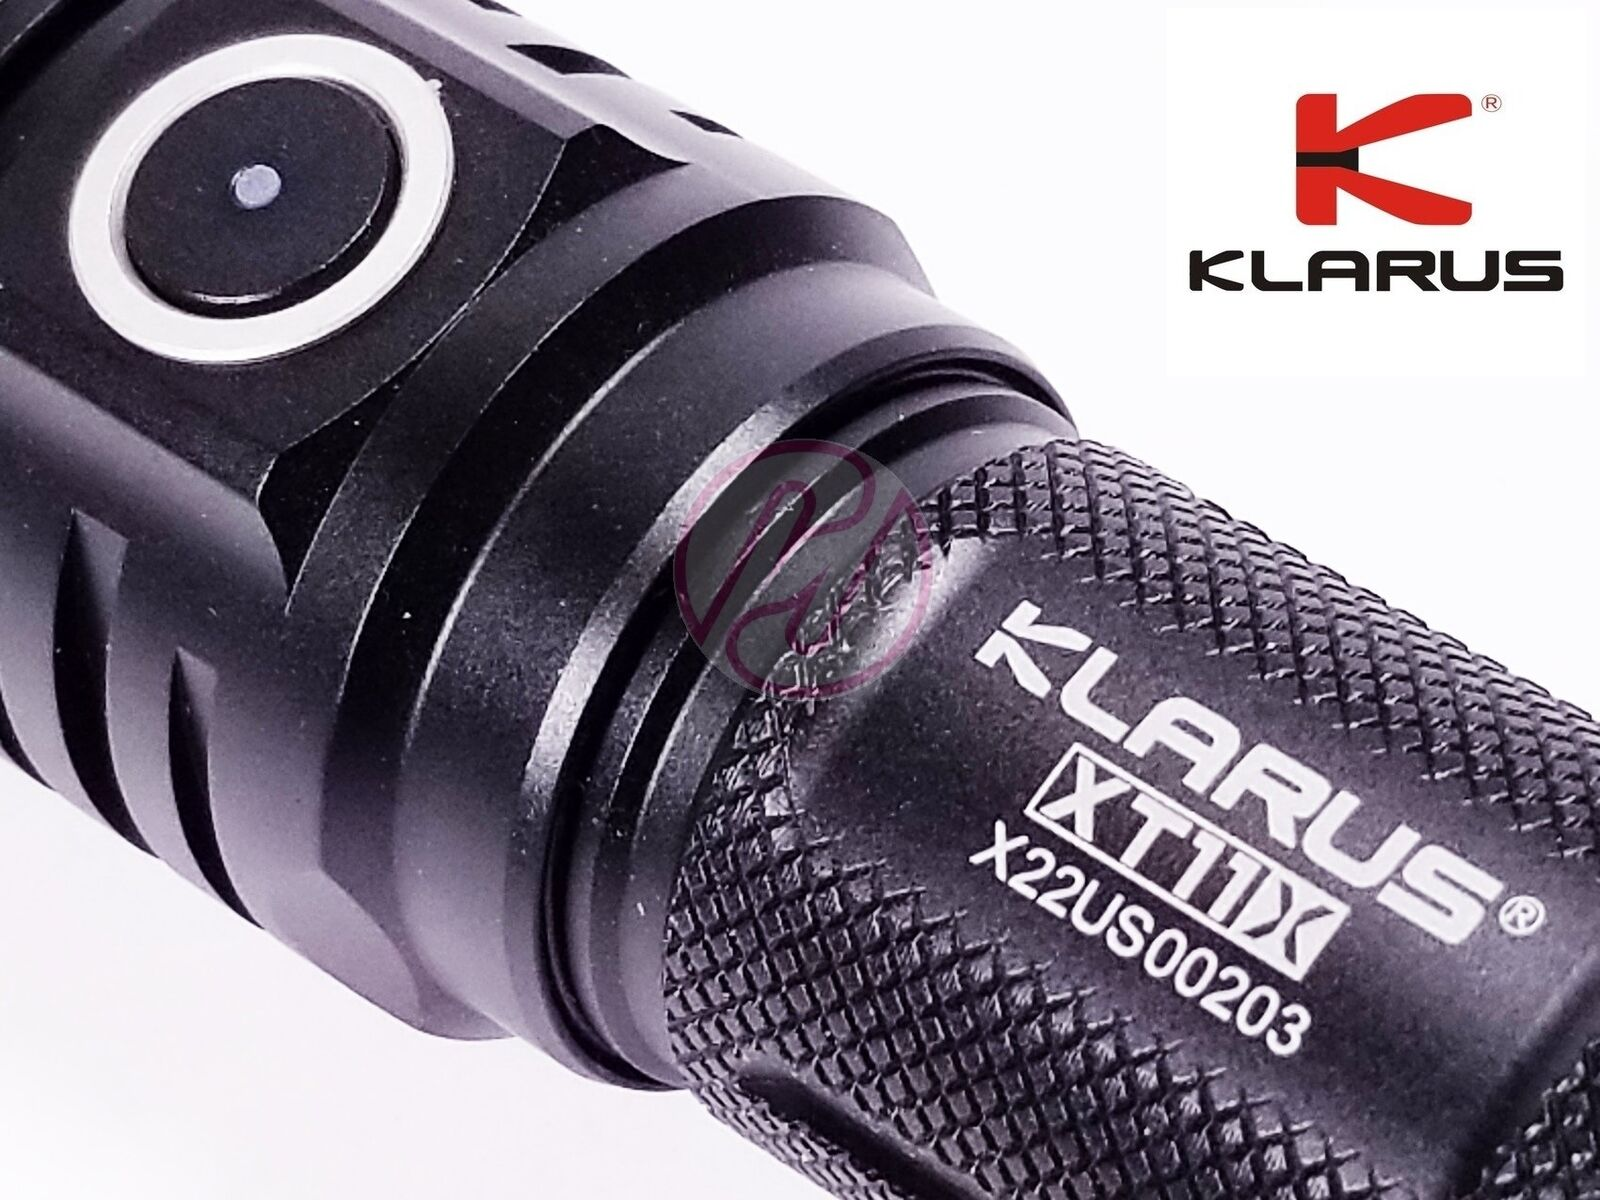 Klarus XT11X Cree XHP70.2 3200lm LED USB Rechargeable Torch+IMR18650 Battery